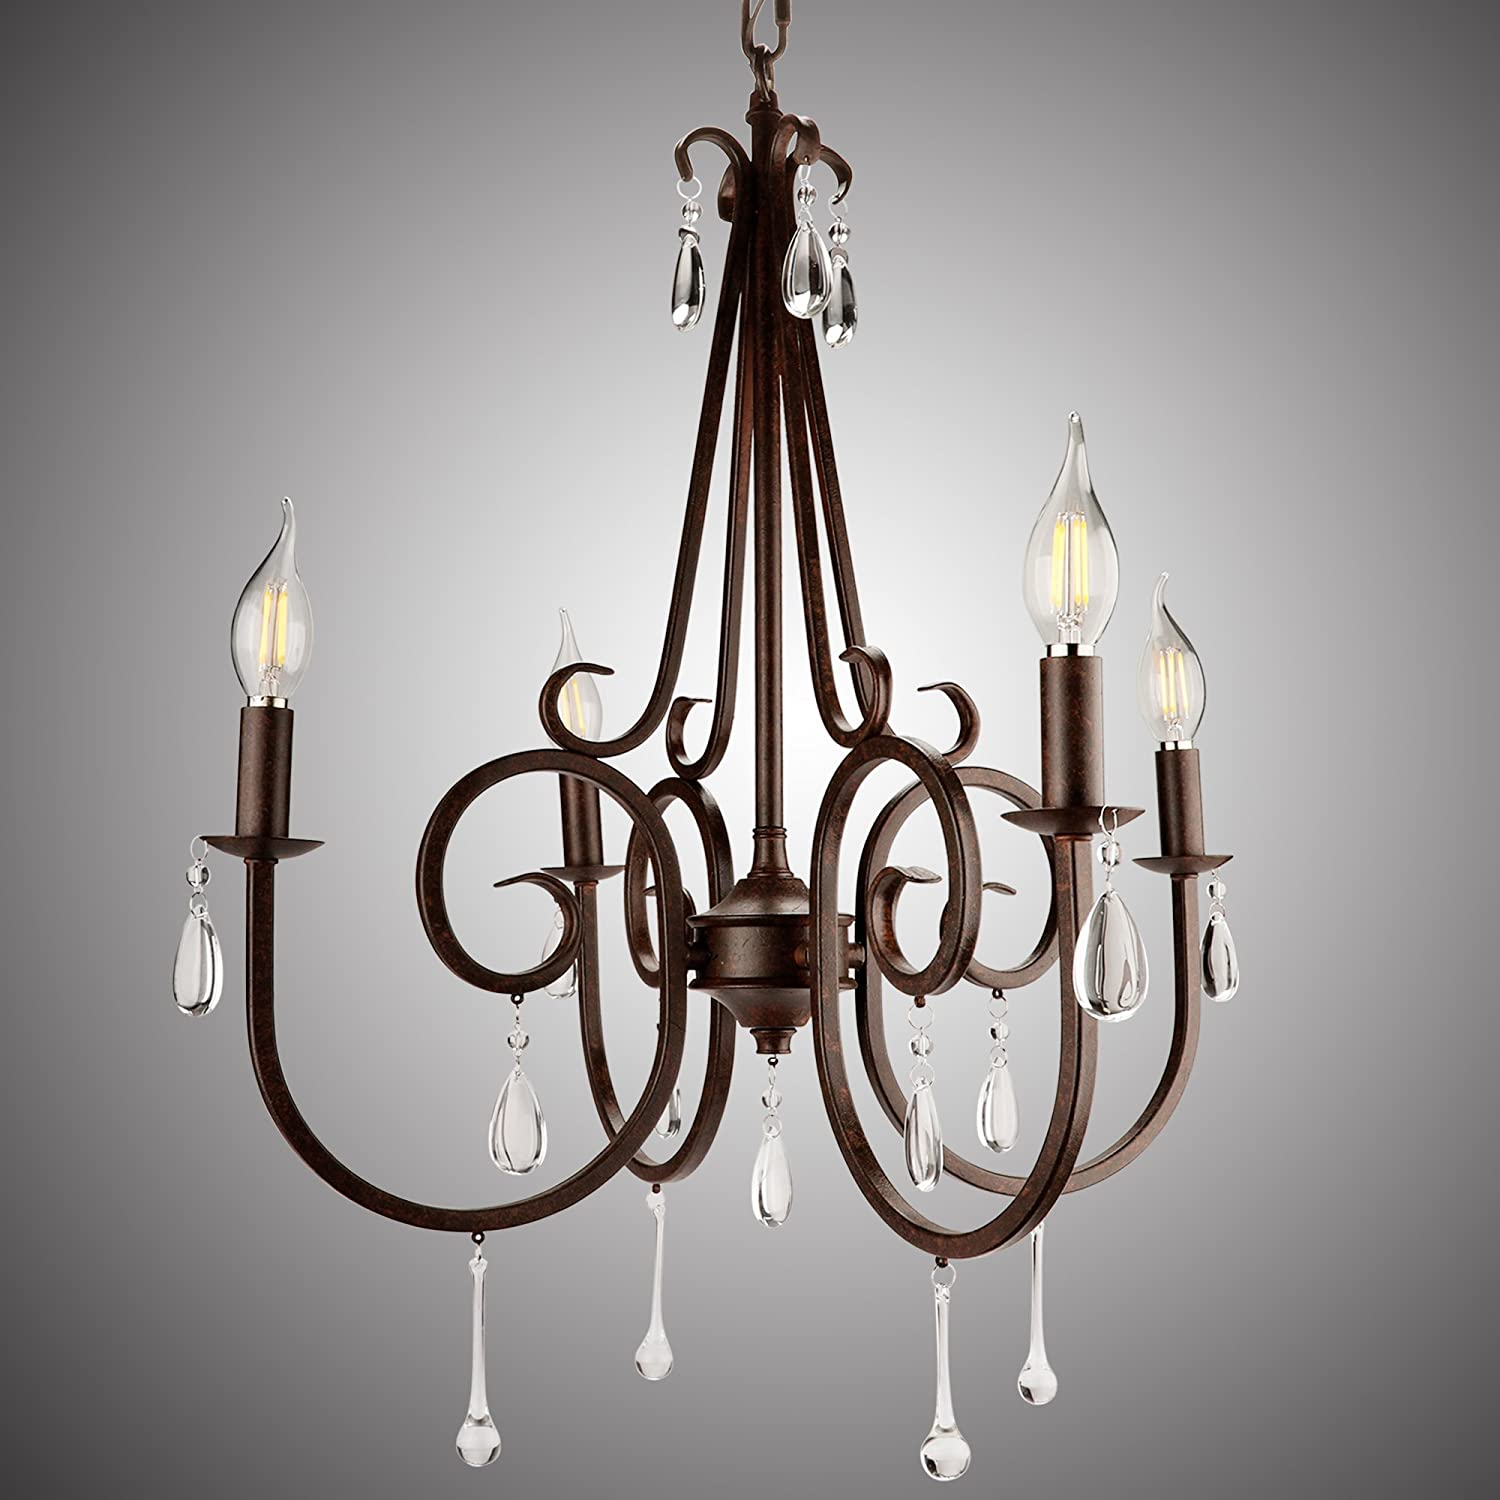 Rustic chandelier for dinning room clear crystal beads farmhouse candle chandelier4 light rustic wrought iron light fixtures for dinning living room